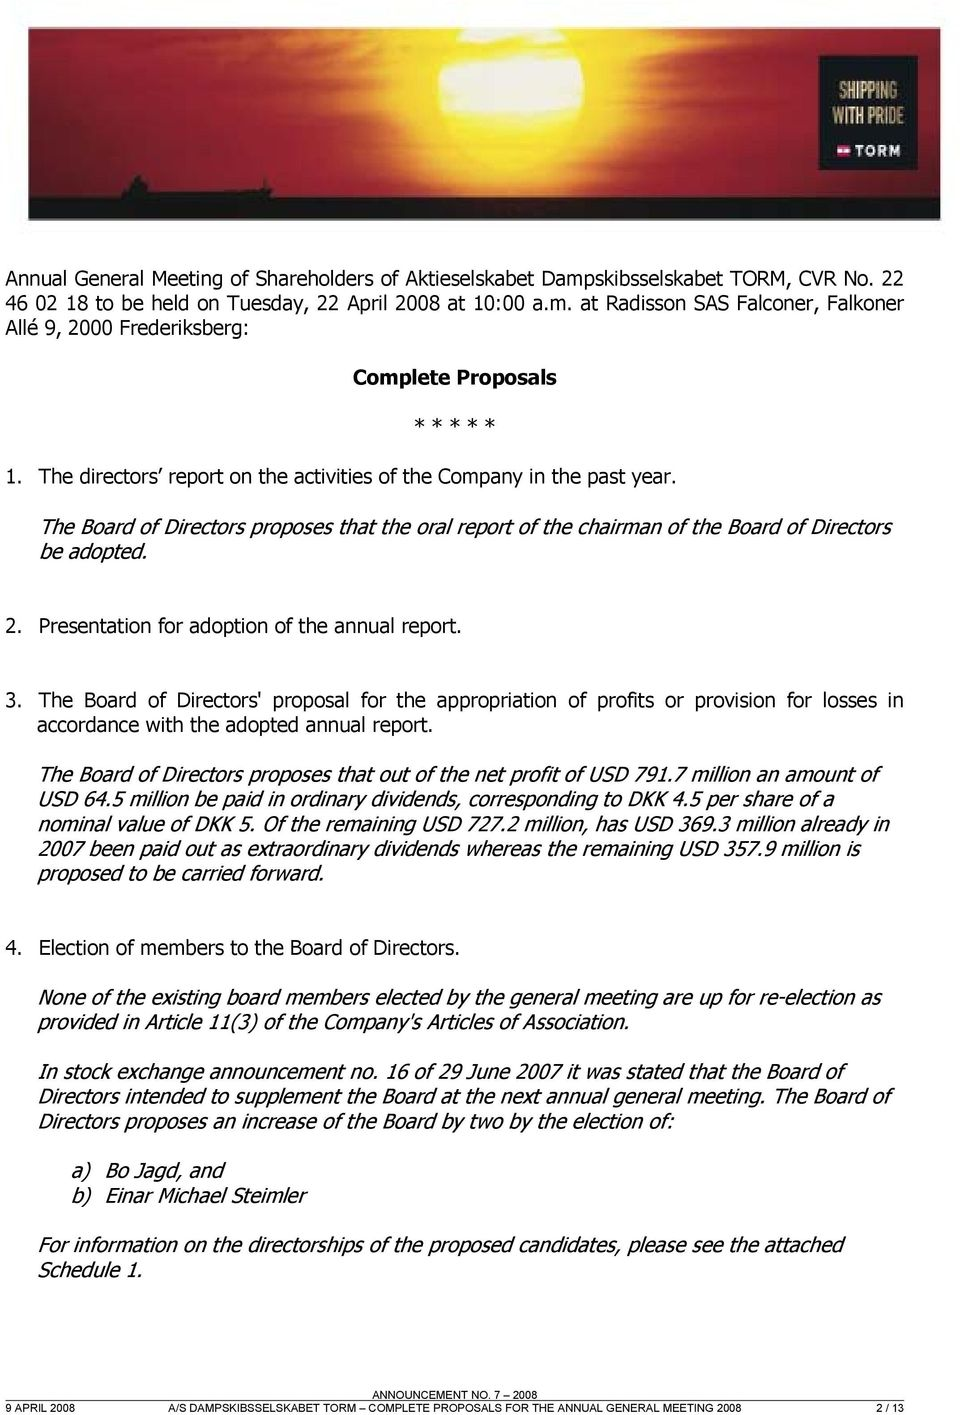 Presentation for adoption of the annual report. 3. The Board of Directors' proposal for the appropriation of profits or provision for losses in accordance with the adopted annual report.